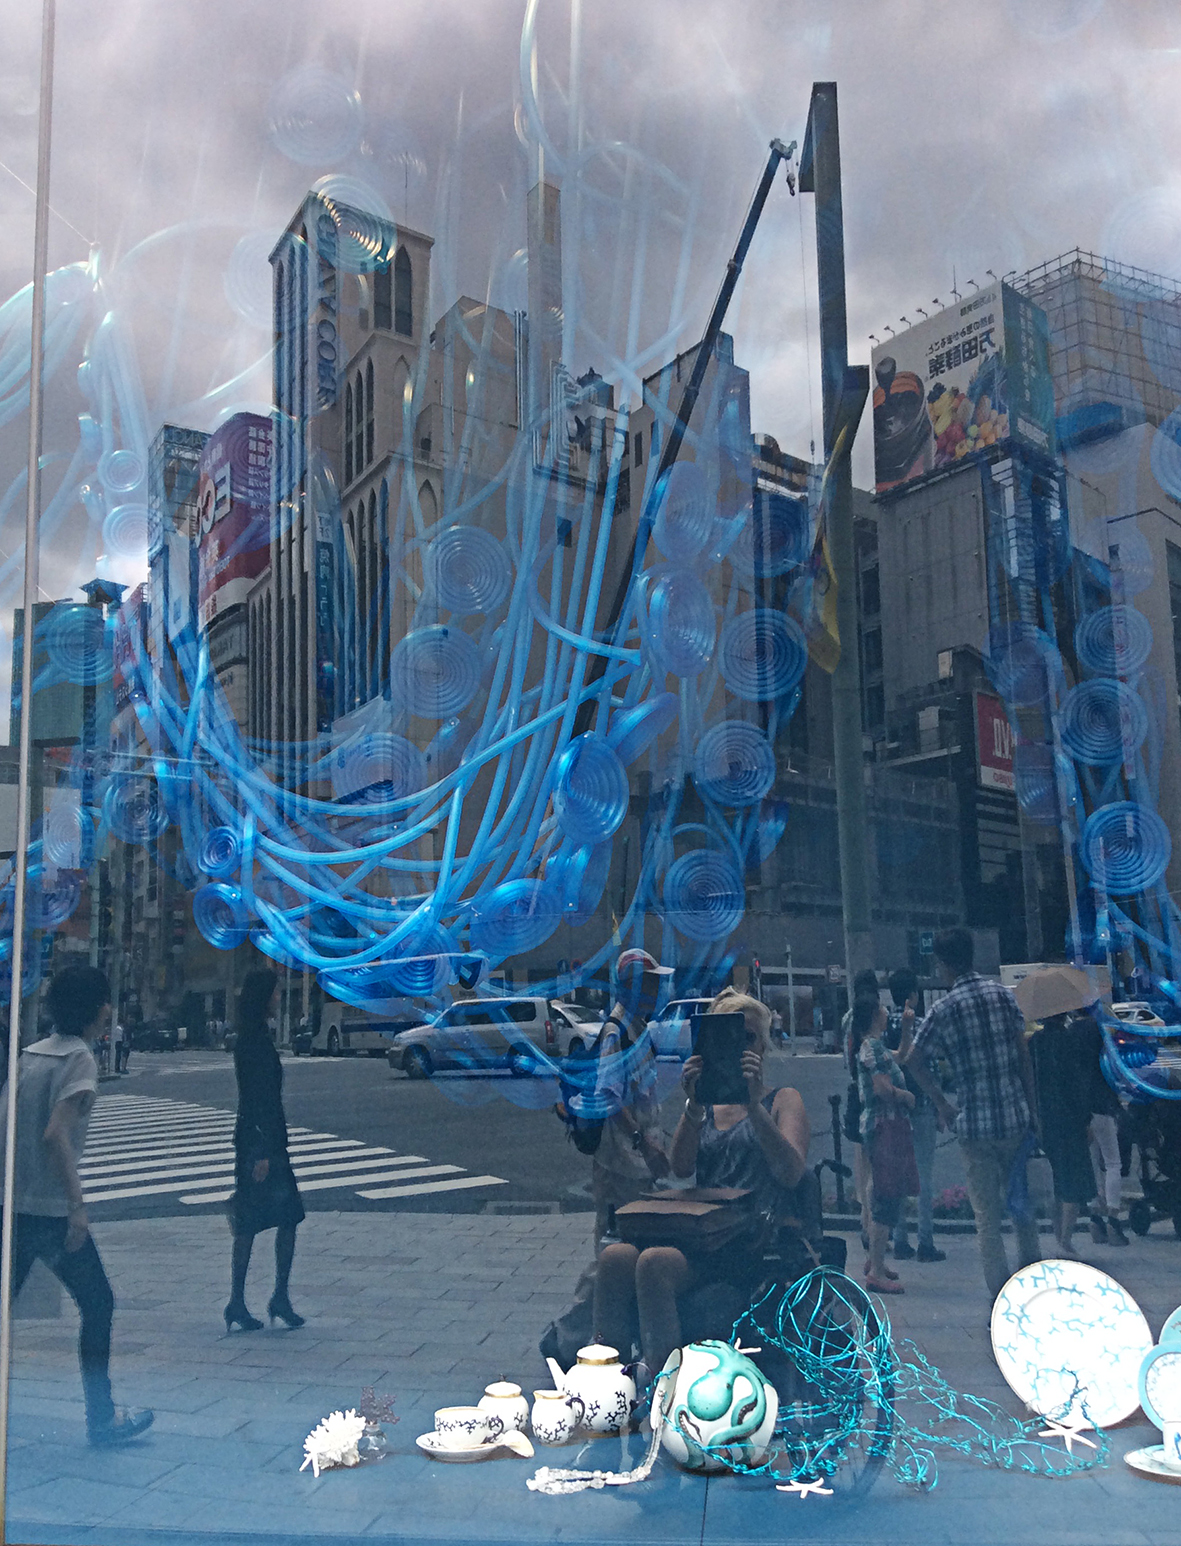 in photographing the looped and coiled blue 'hosepipe' in the shop window, I also captured a cloudy sky, and the reflected street.